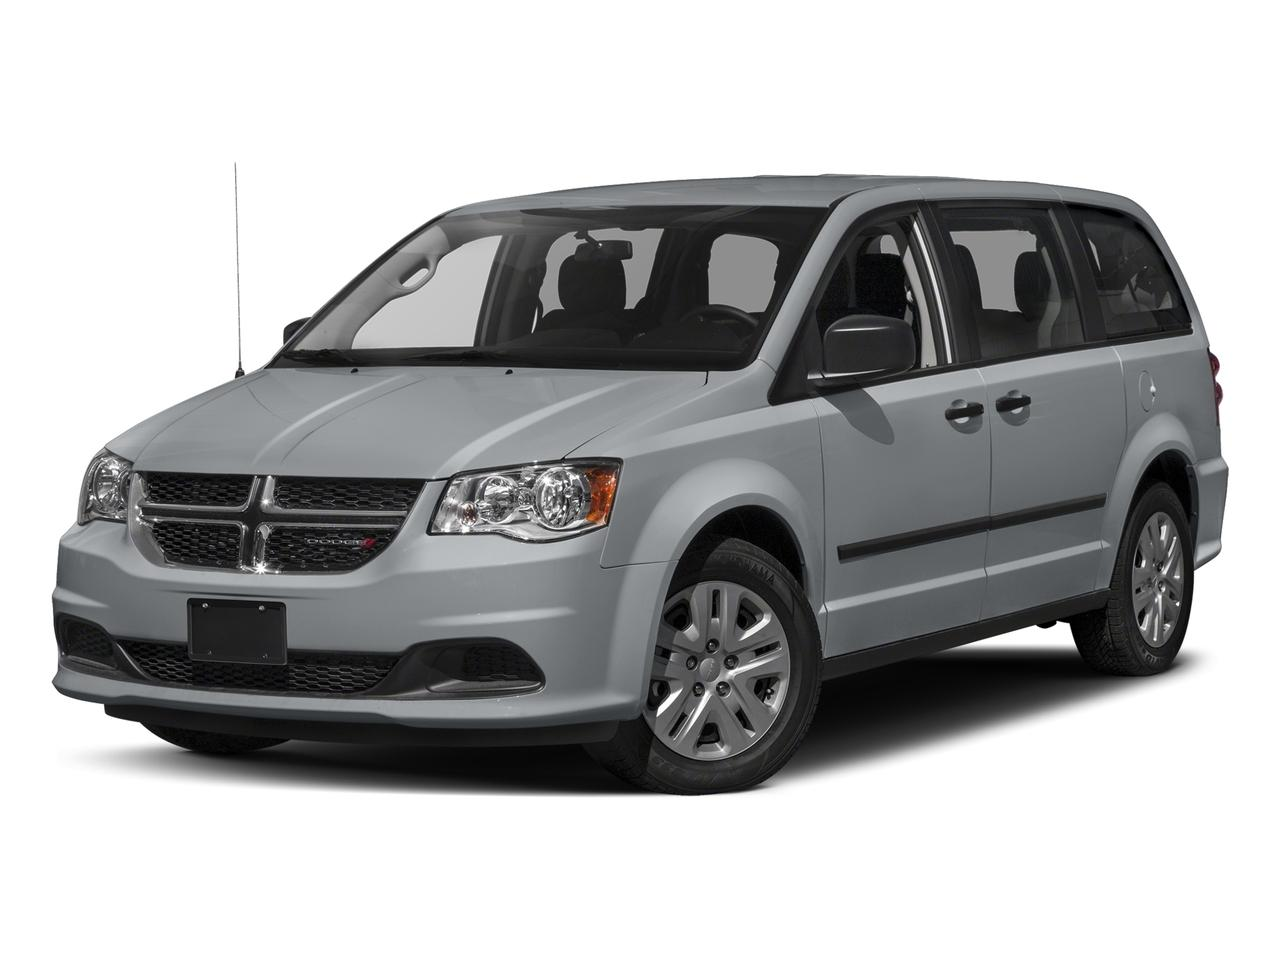 2017 Dodge Grand Caravan Vehicle Photo in Spokane, WA 99207